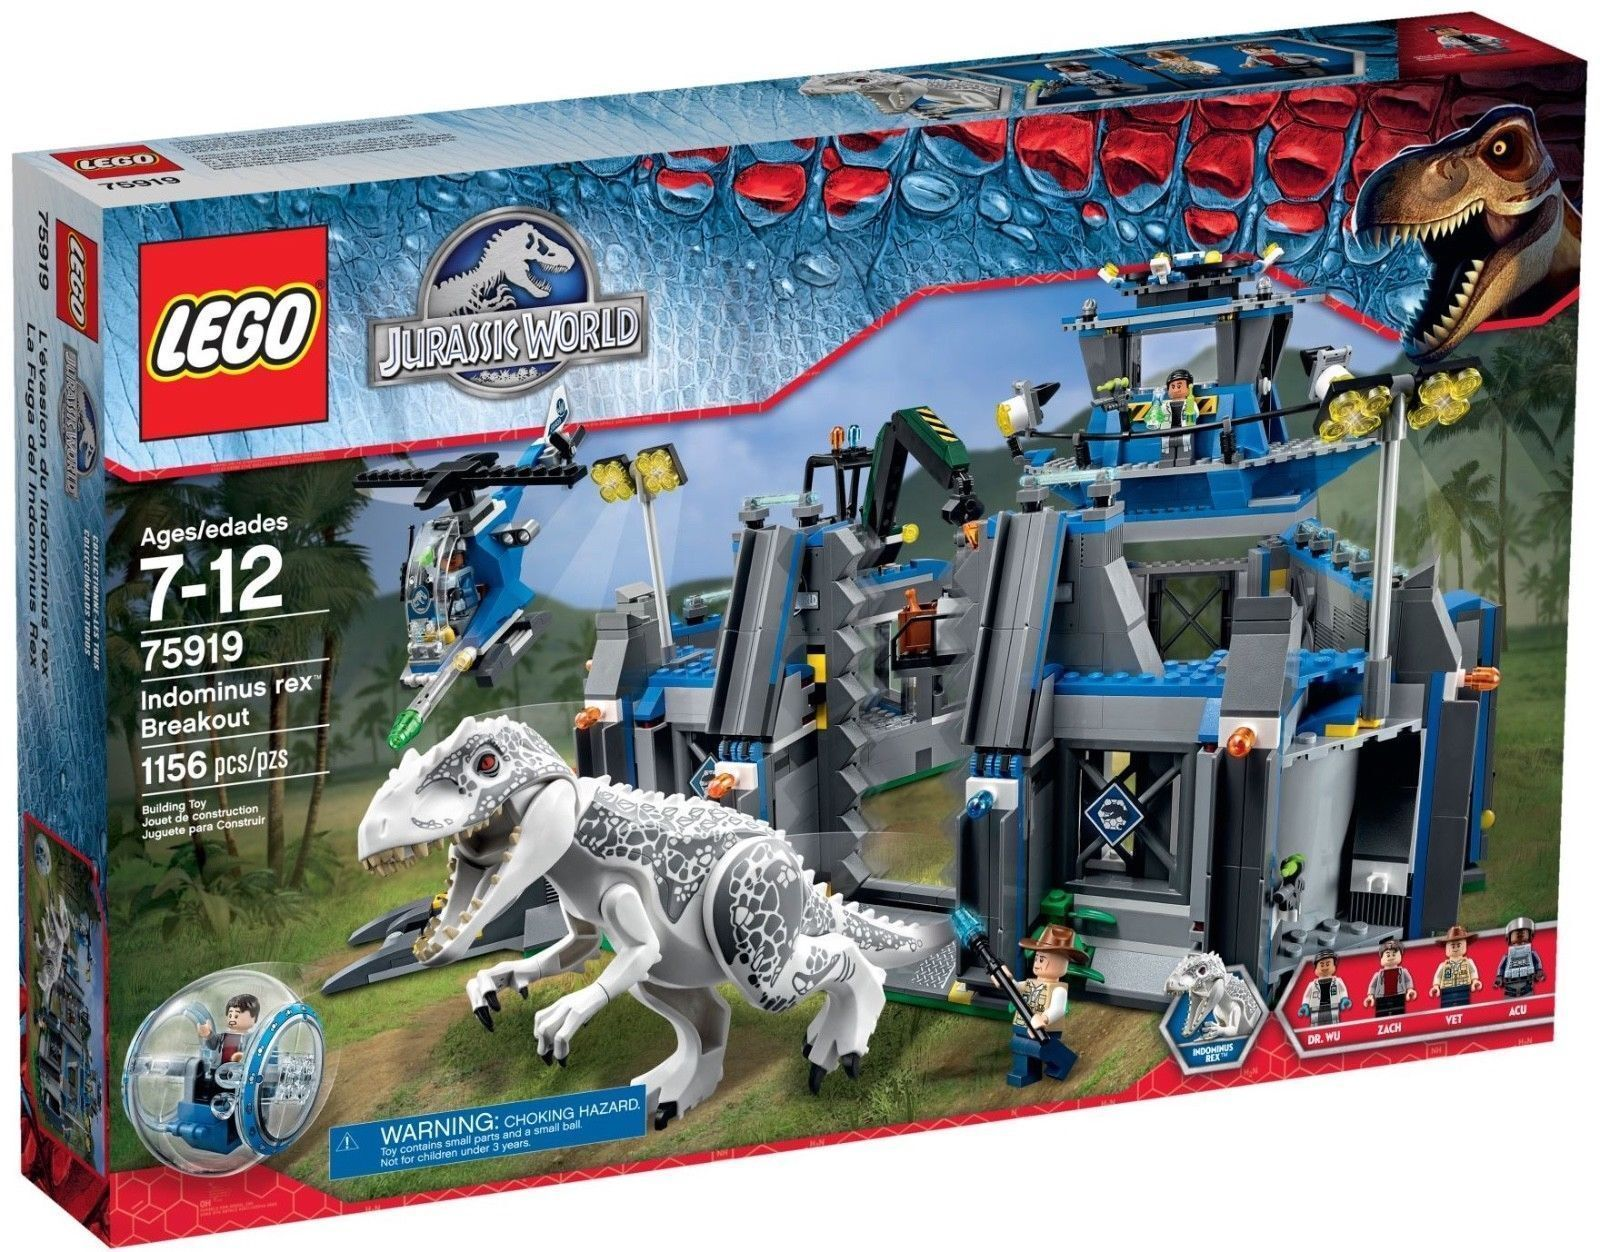 LEGO JURASSIC WORLD 75919 Indominus Rex Breakout SEALED  retirosso MINT gratuito SHIP  punti vendita